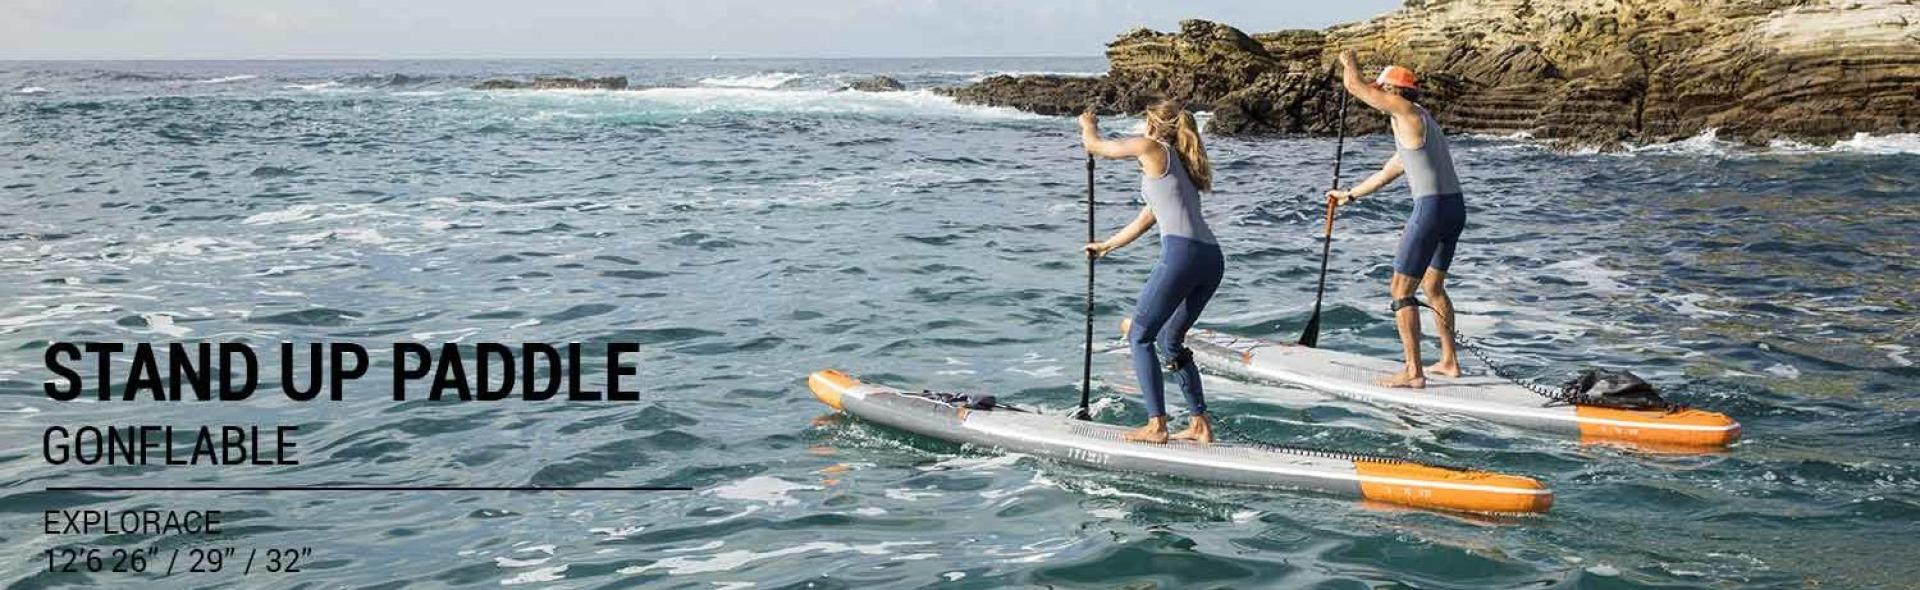 stand-up-paddle-gonflable-explorace-itiwit-decathlon